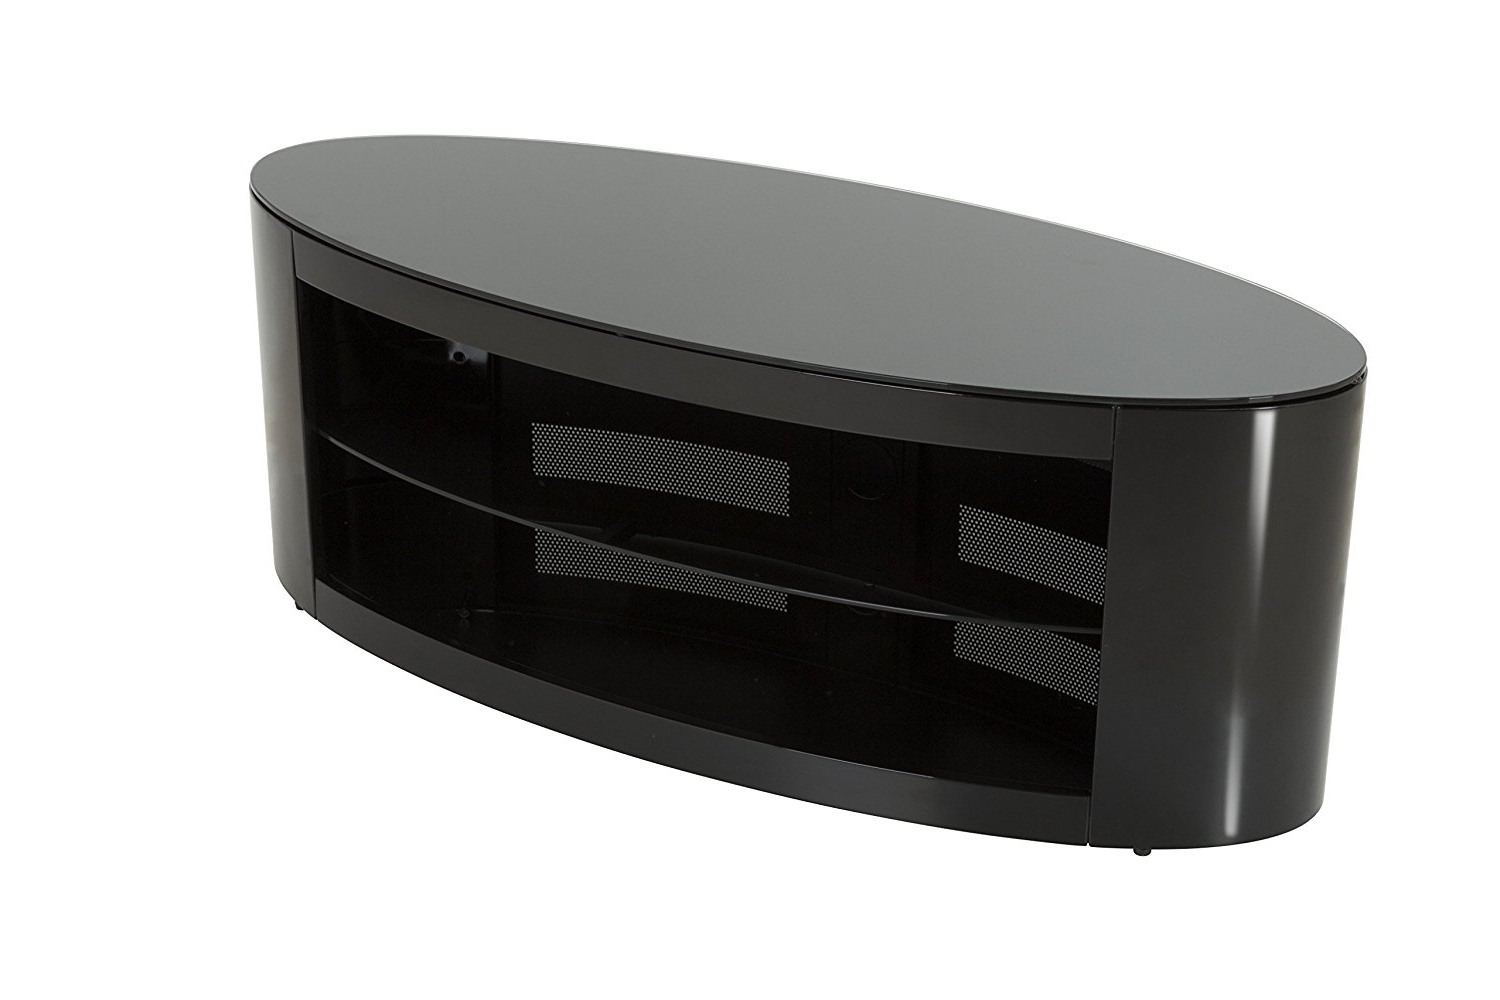 Newest Cheap Black Oval Tv Stand, Find Black Oval Tv Stand Deals On Line At With Regard To Oval White Tv Stands (View 10 of 20)